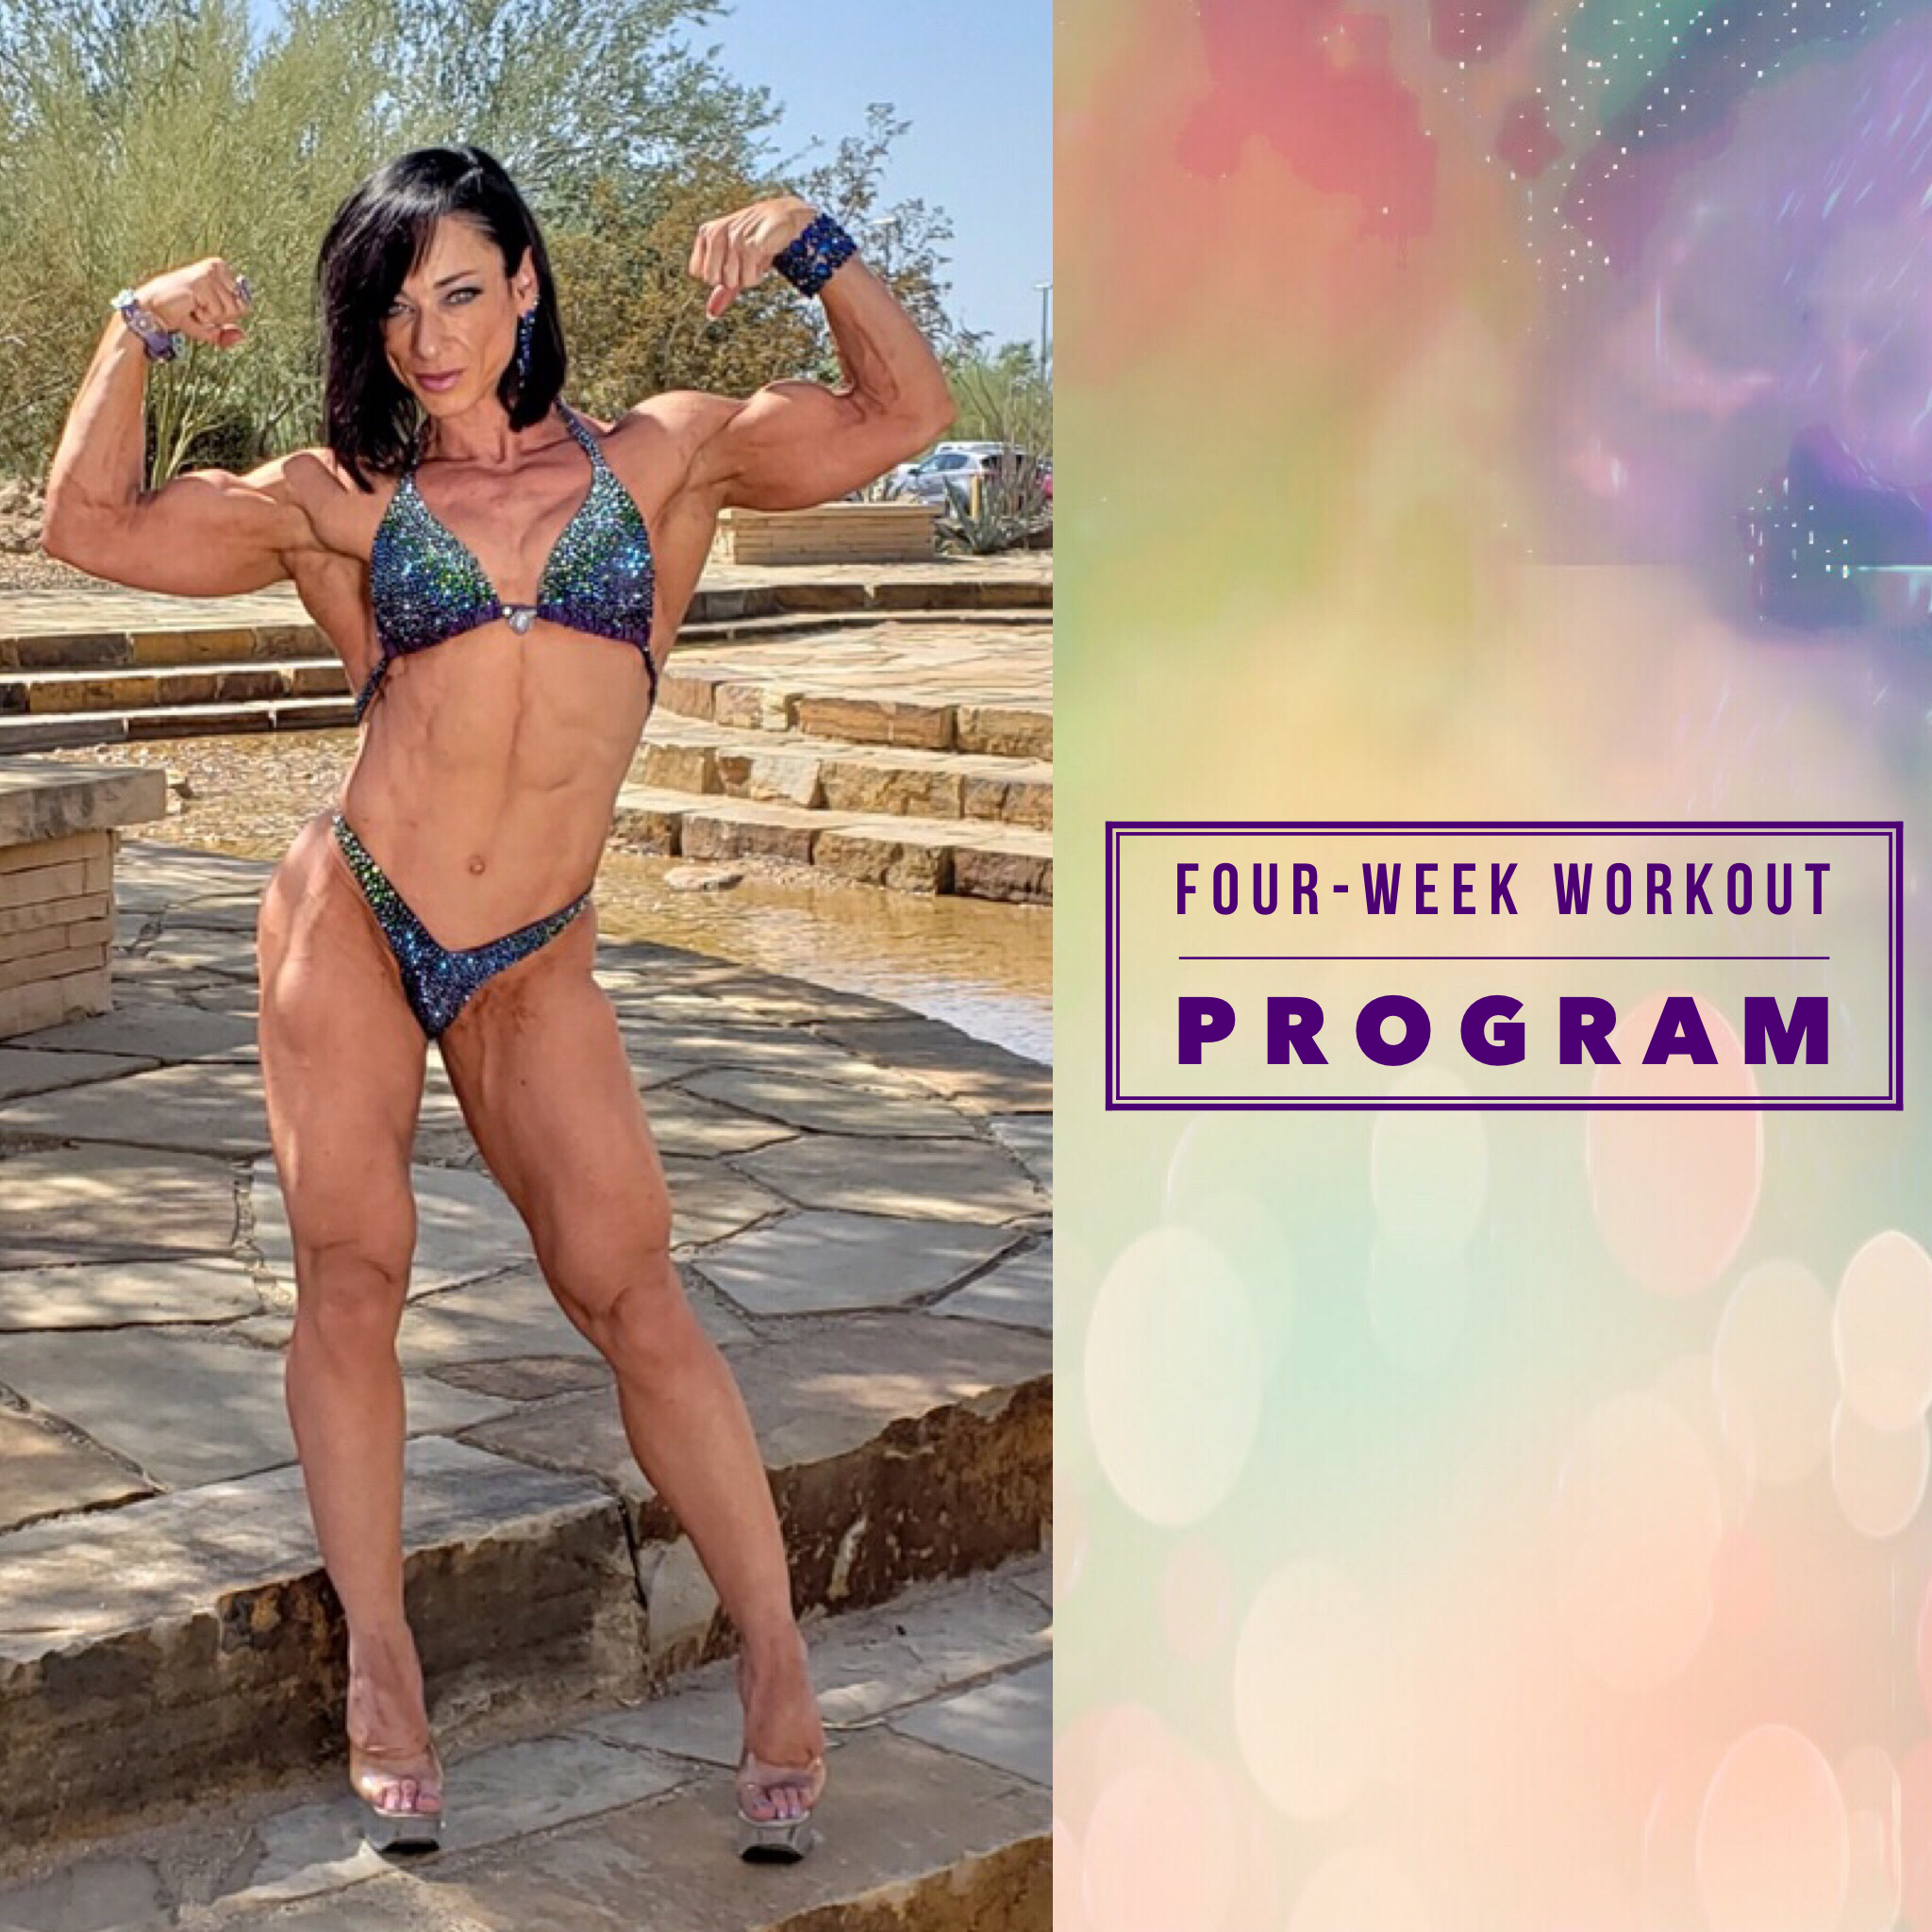 Basic Workout Plan Pre Made In Booklet Format 4 Days Week Not Customized Consultation And Check Ins Not Included Store Jodi Leigh Miller · 6 ratings · 1 review · 1 distinct work. jodi leigh miller